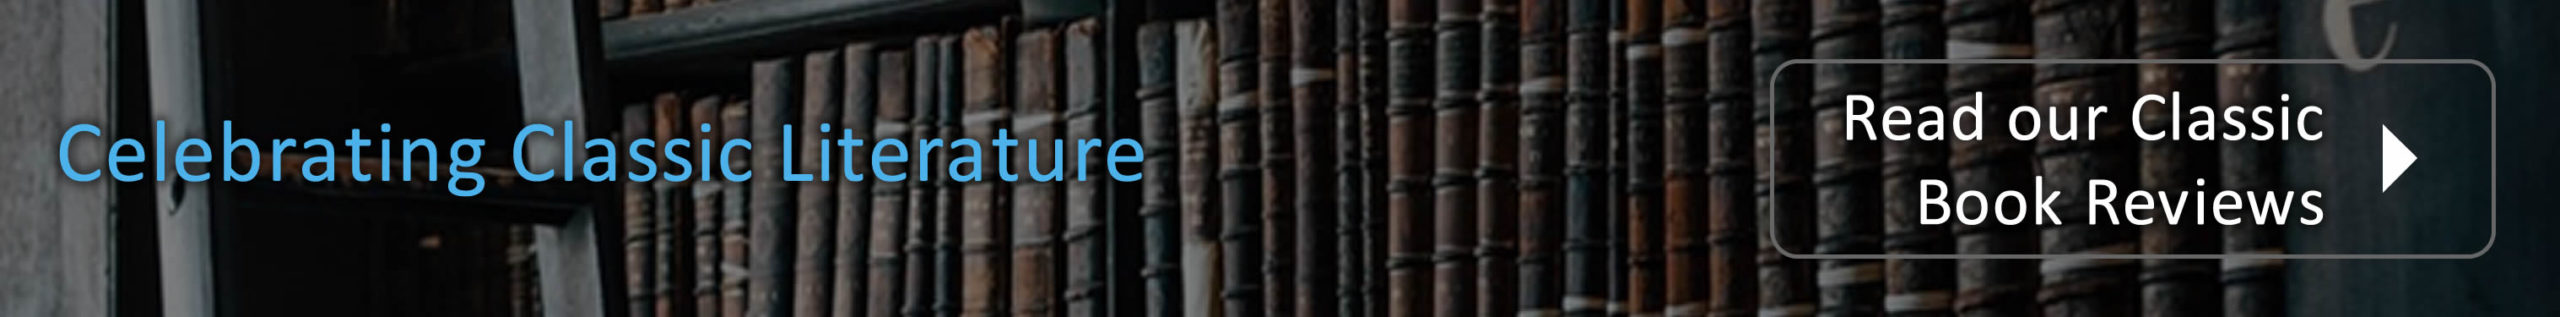 Header Banner. Celebrating Classic Literature. Read our Classic Book Reviews